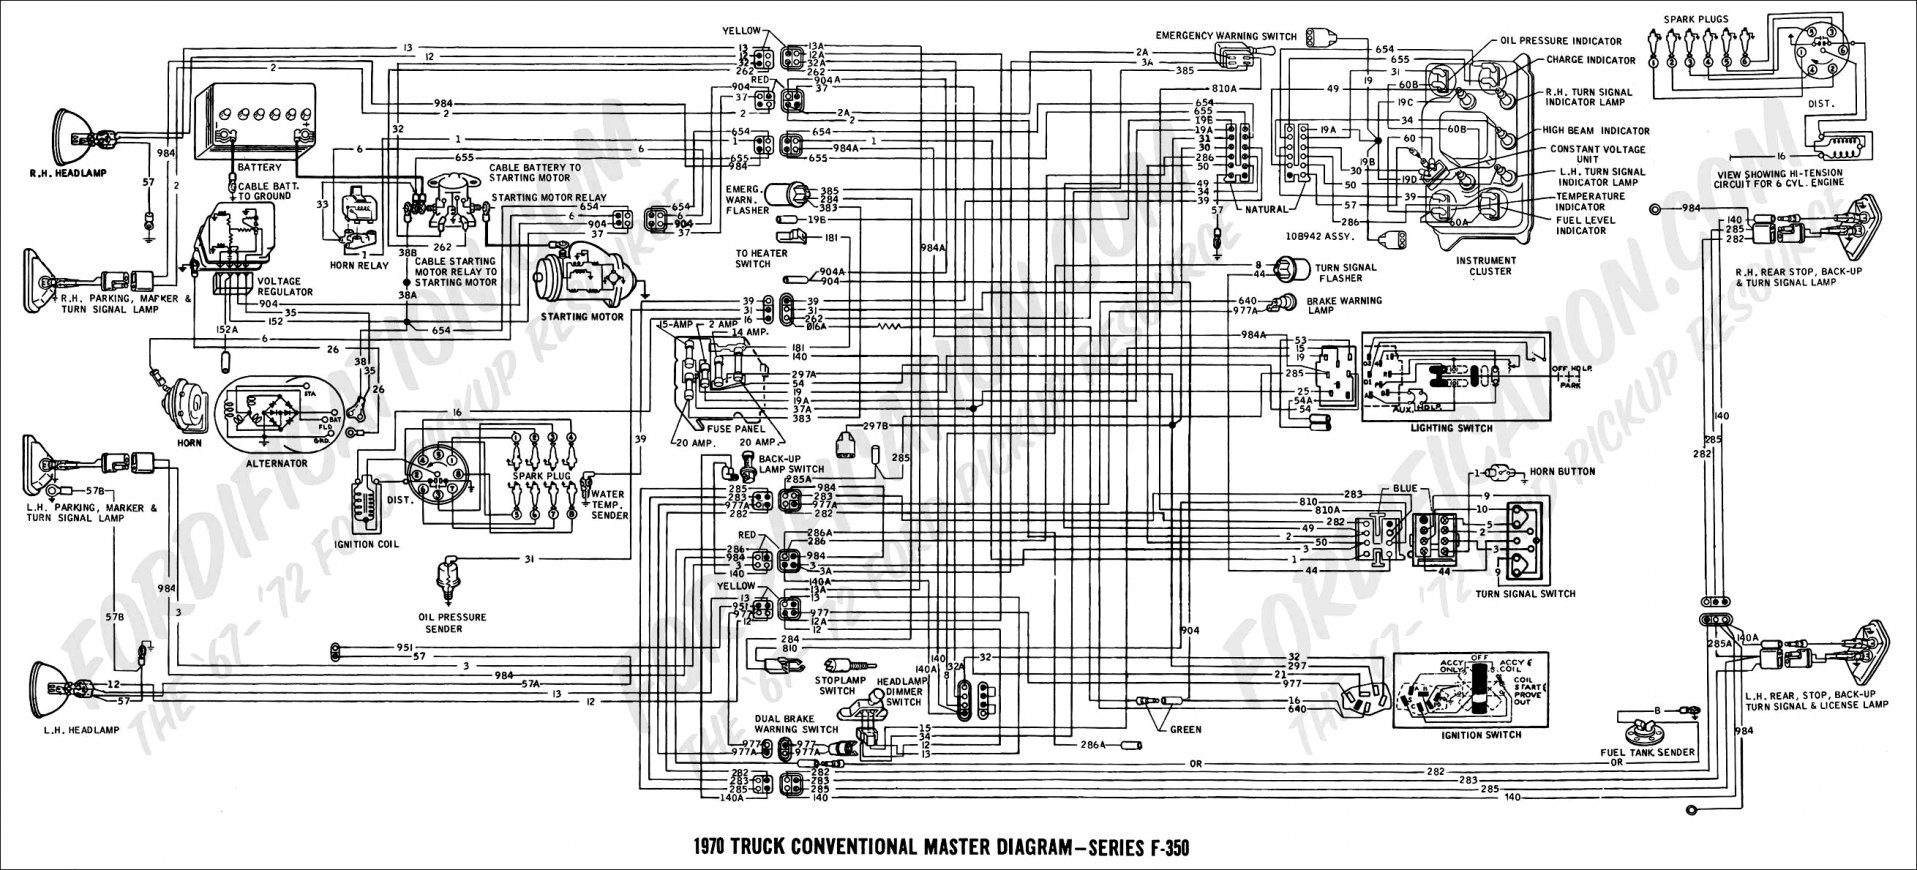 2005 Ford Ranger Trailer Wiring Diagram | Wiring Diagram - Ranger Trailer Wiring Diagram